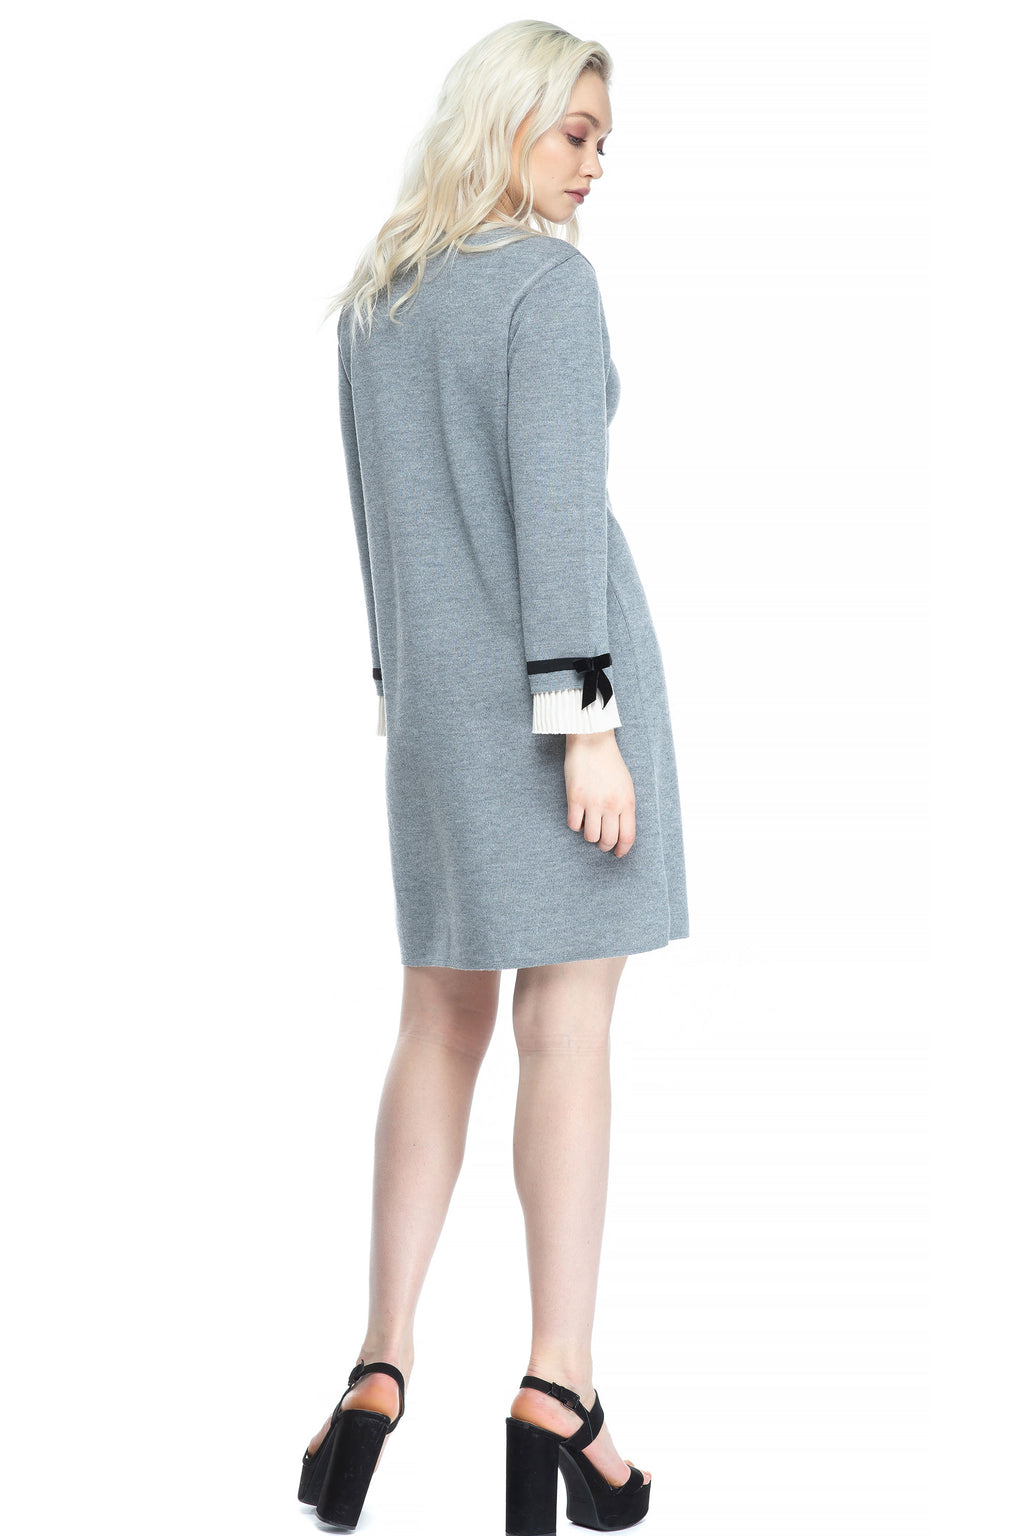 Pietro Brunelli Mansfield Sweater Dress